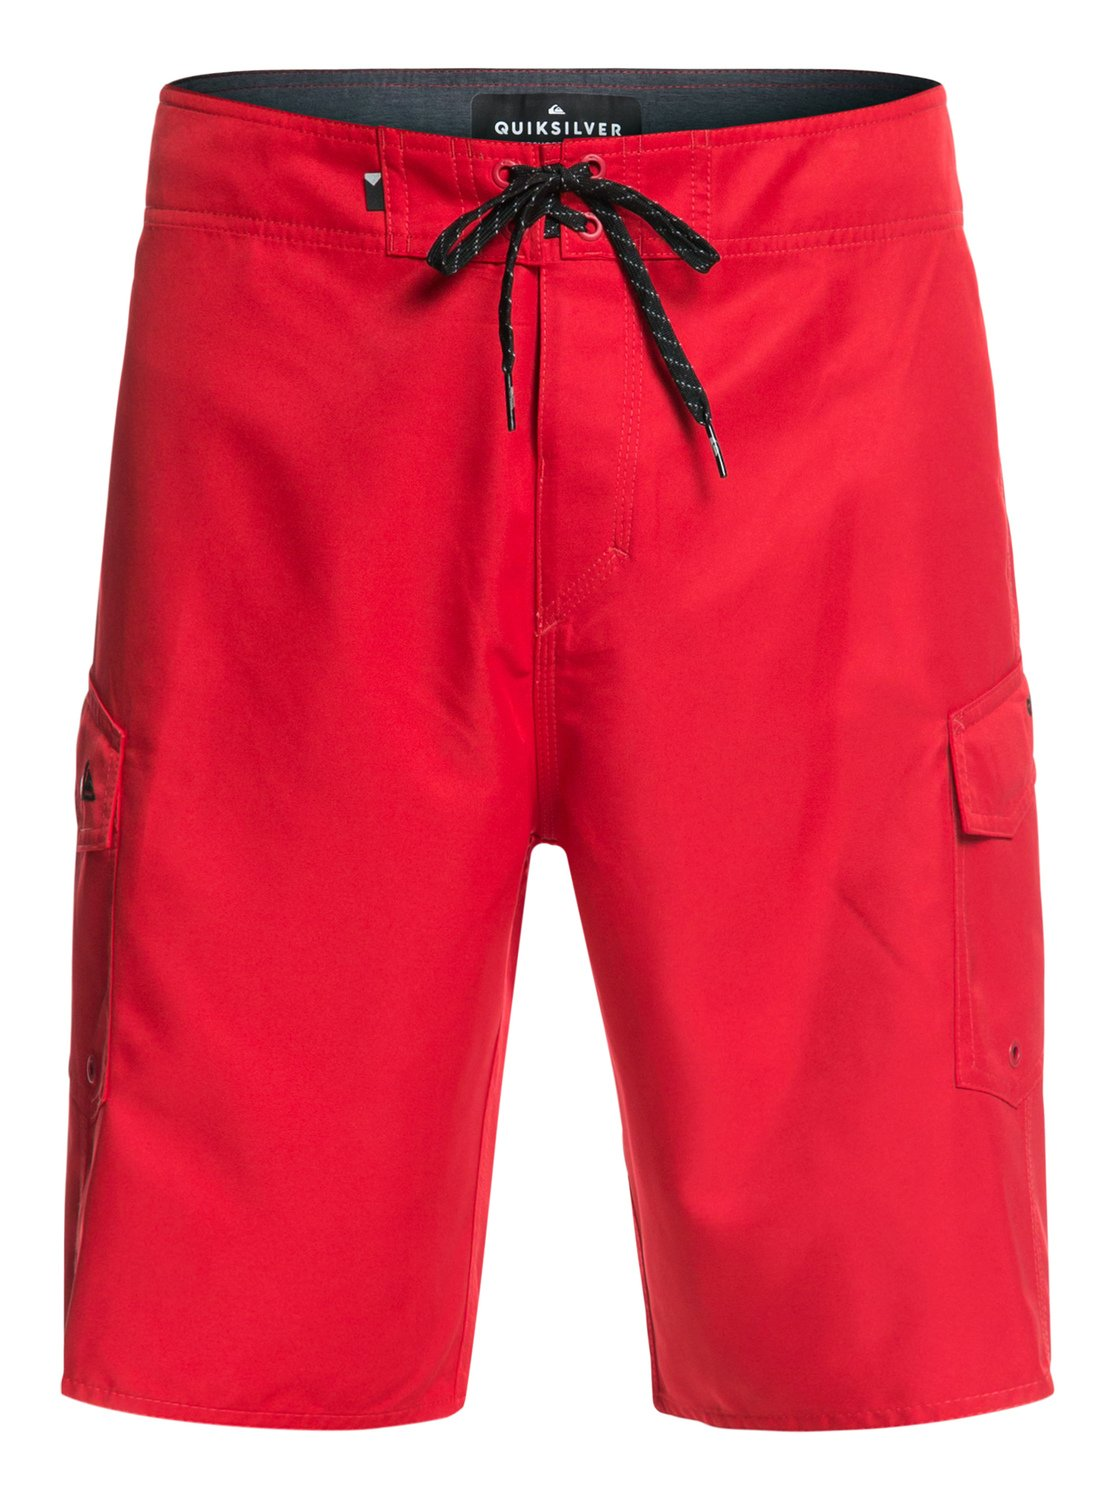 66b7f0a9a3b9a Quiksilver-Manic-Solid-21-034-Boardshorts-EQYBS04089